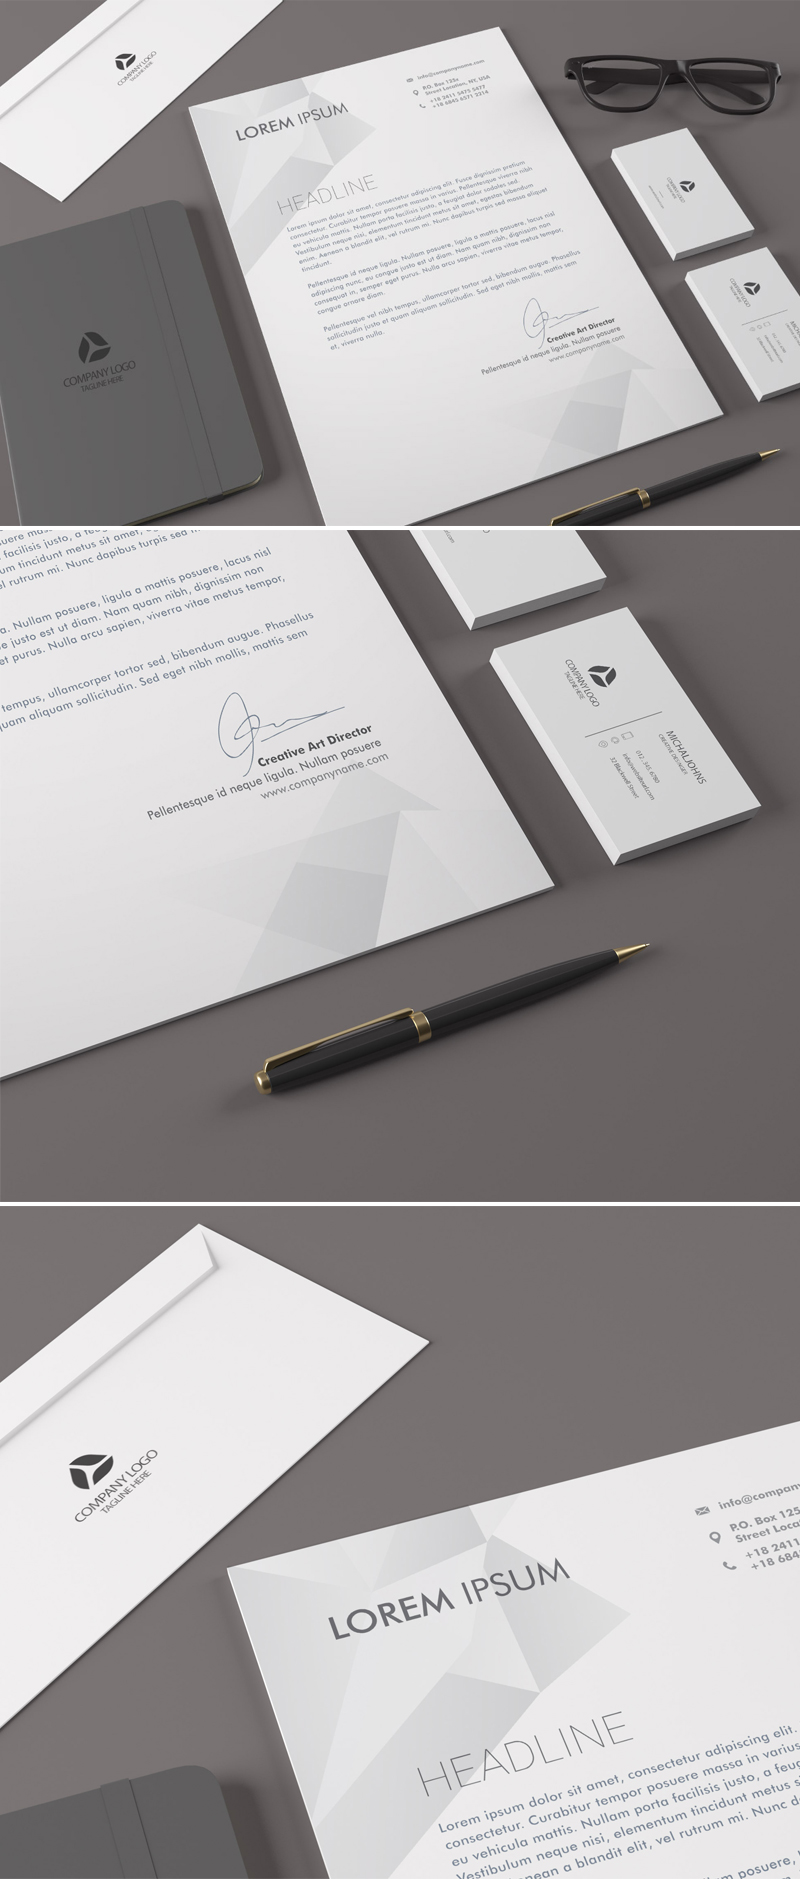 Free-Realistic-Corporate-Identity-Stationary-Mockup